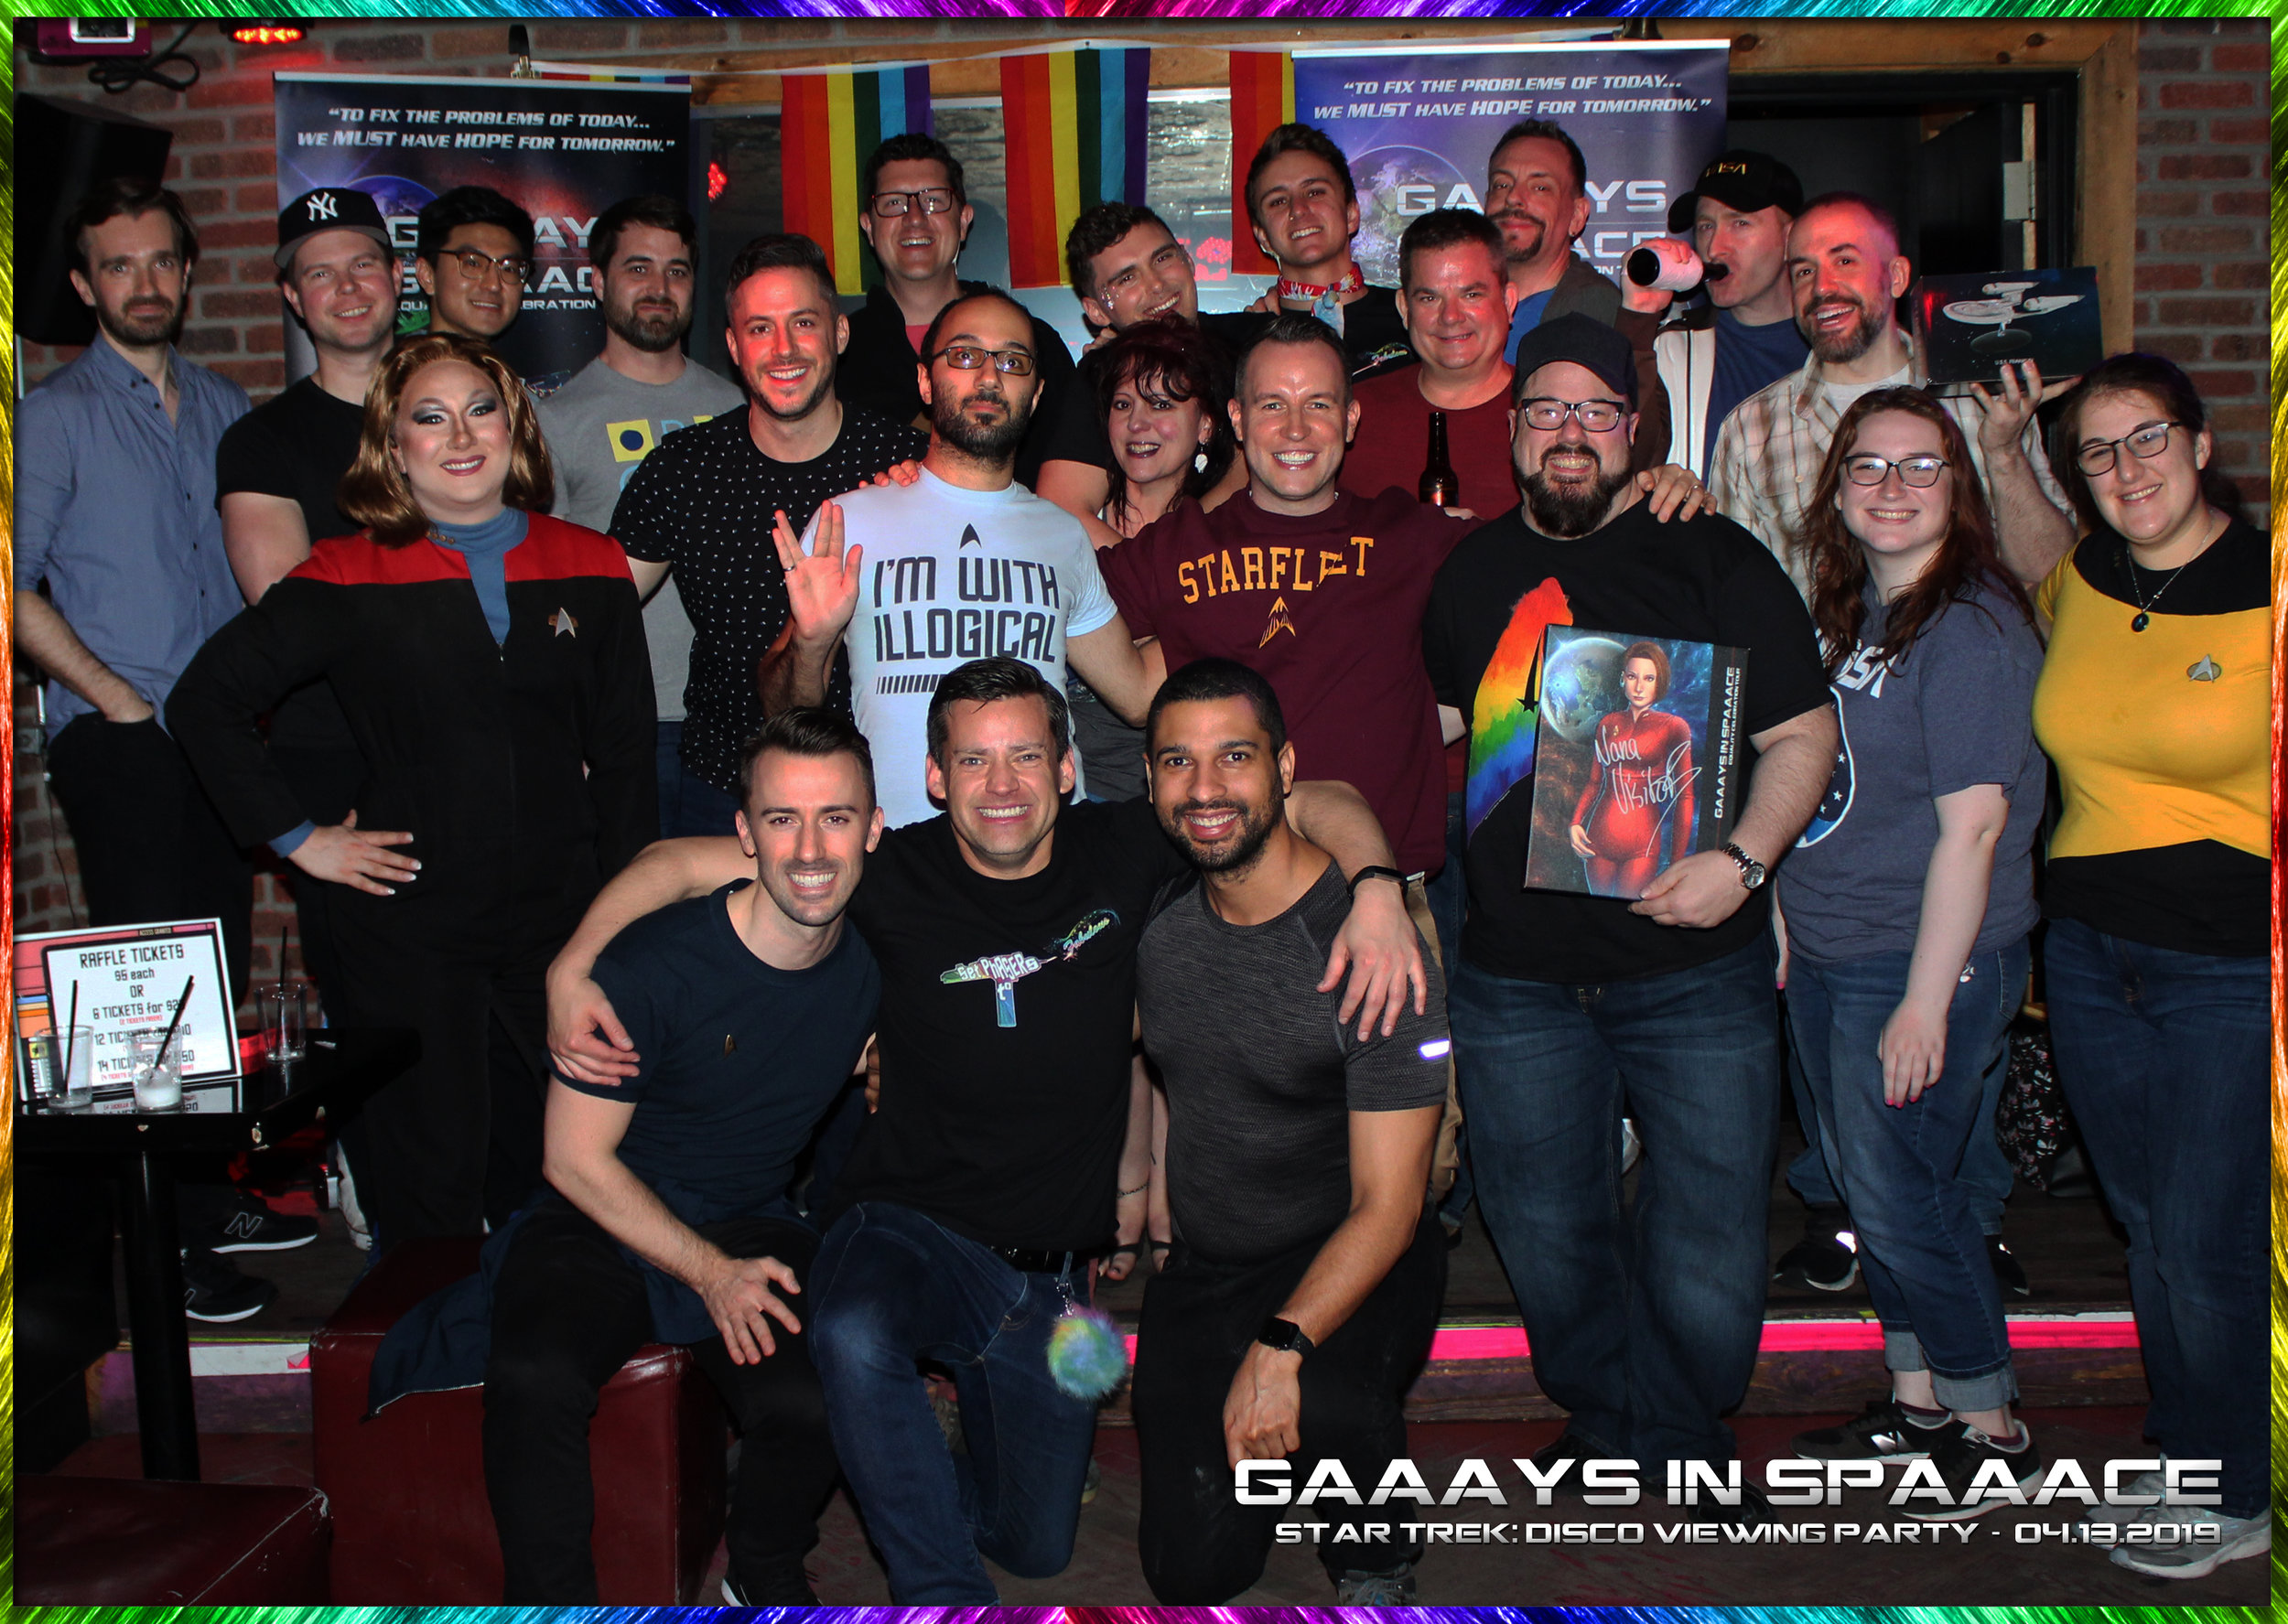 04-13-19-GIS-DISCO-VIEWING-PARTY-17.jpg